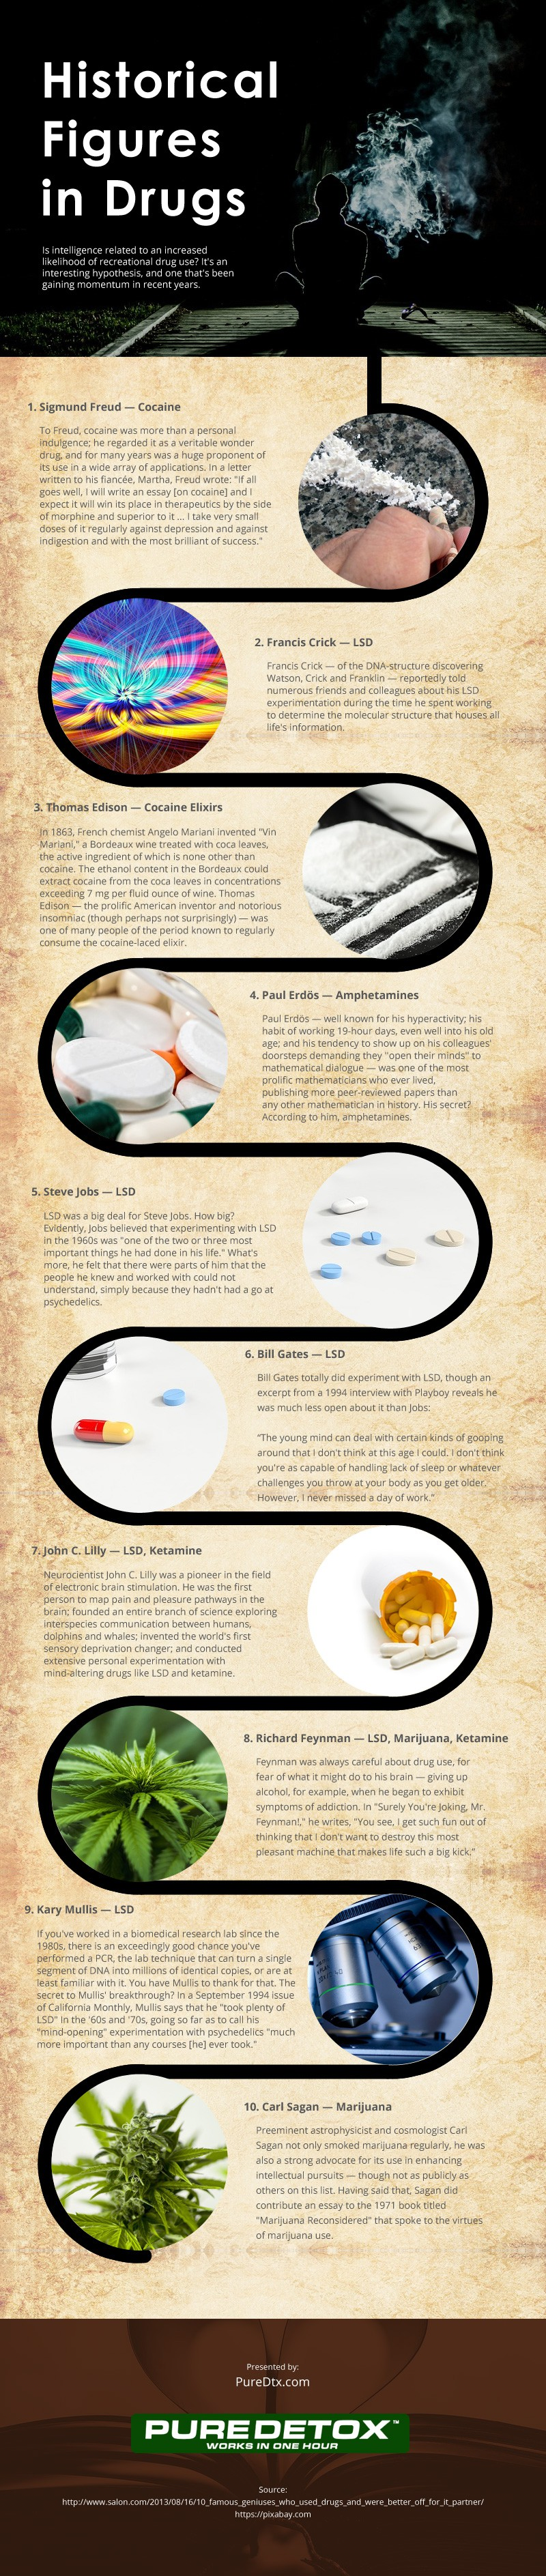 Historical-Figures-in-Drugs Infographic